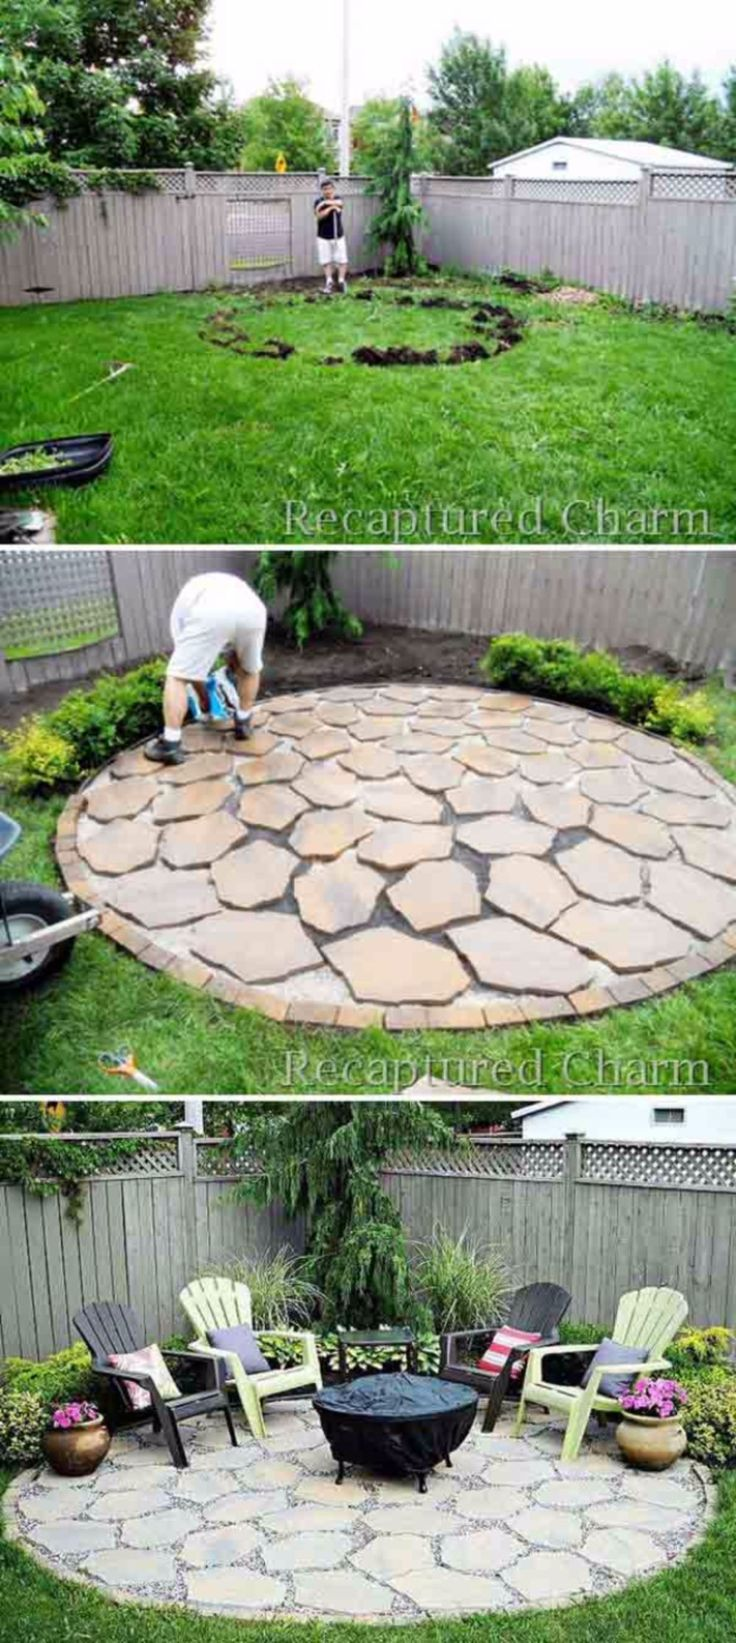 Awesome 30 diy patio ideas on a budget httpswartaku201705 awesome 30 diy patio ideas on a budget httpswartaku2017052730 diy patio ideas budget for the home pinterest diy patio patios and solutioingenieria